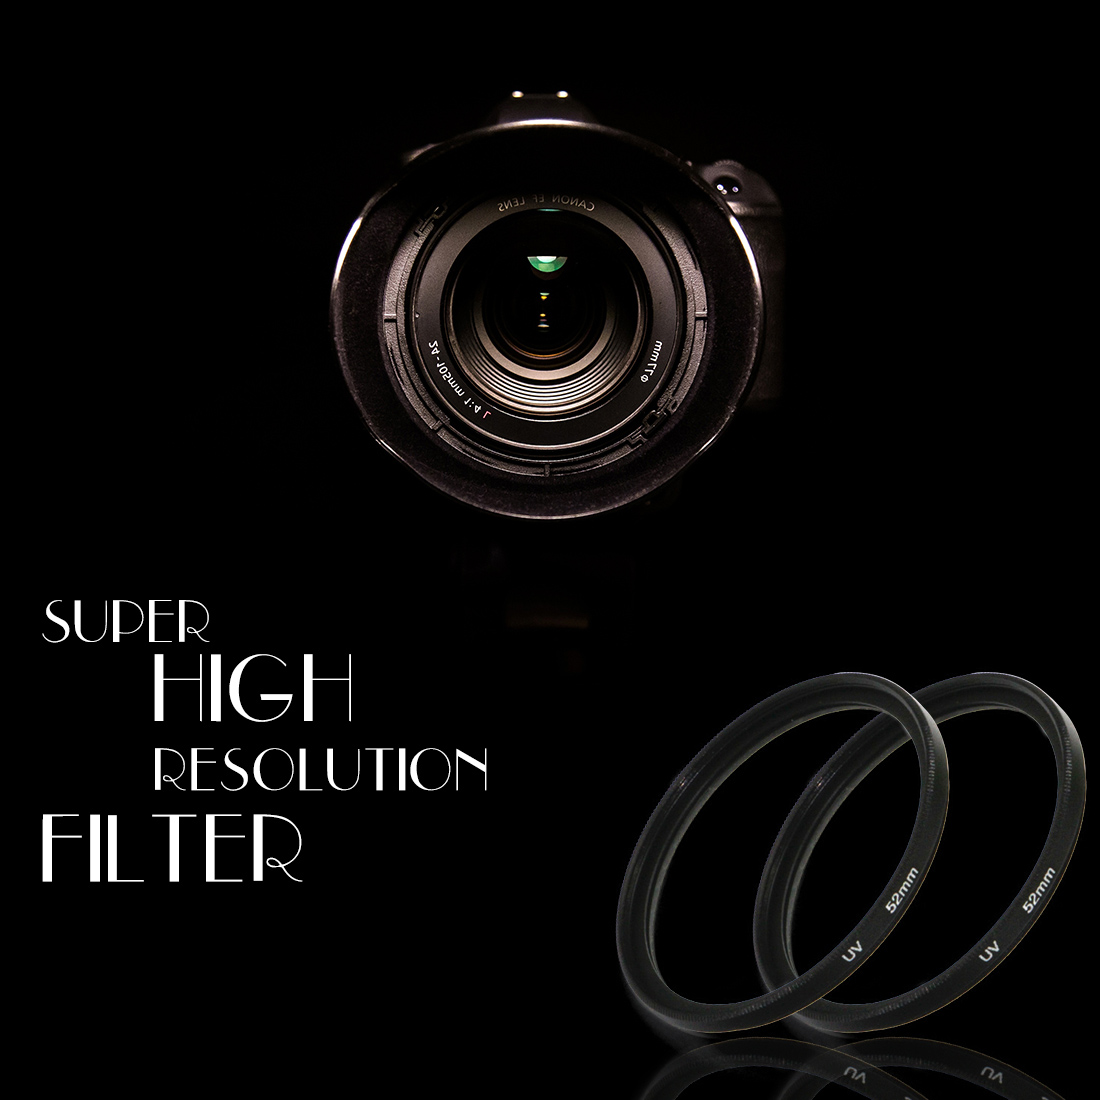 Inpelanyu 30.5/37/ 40.5/4346mm 49mm 52mm 55mm 58mm 62mm 67mm 72mm 77mm 82mm UV Filter For